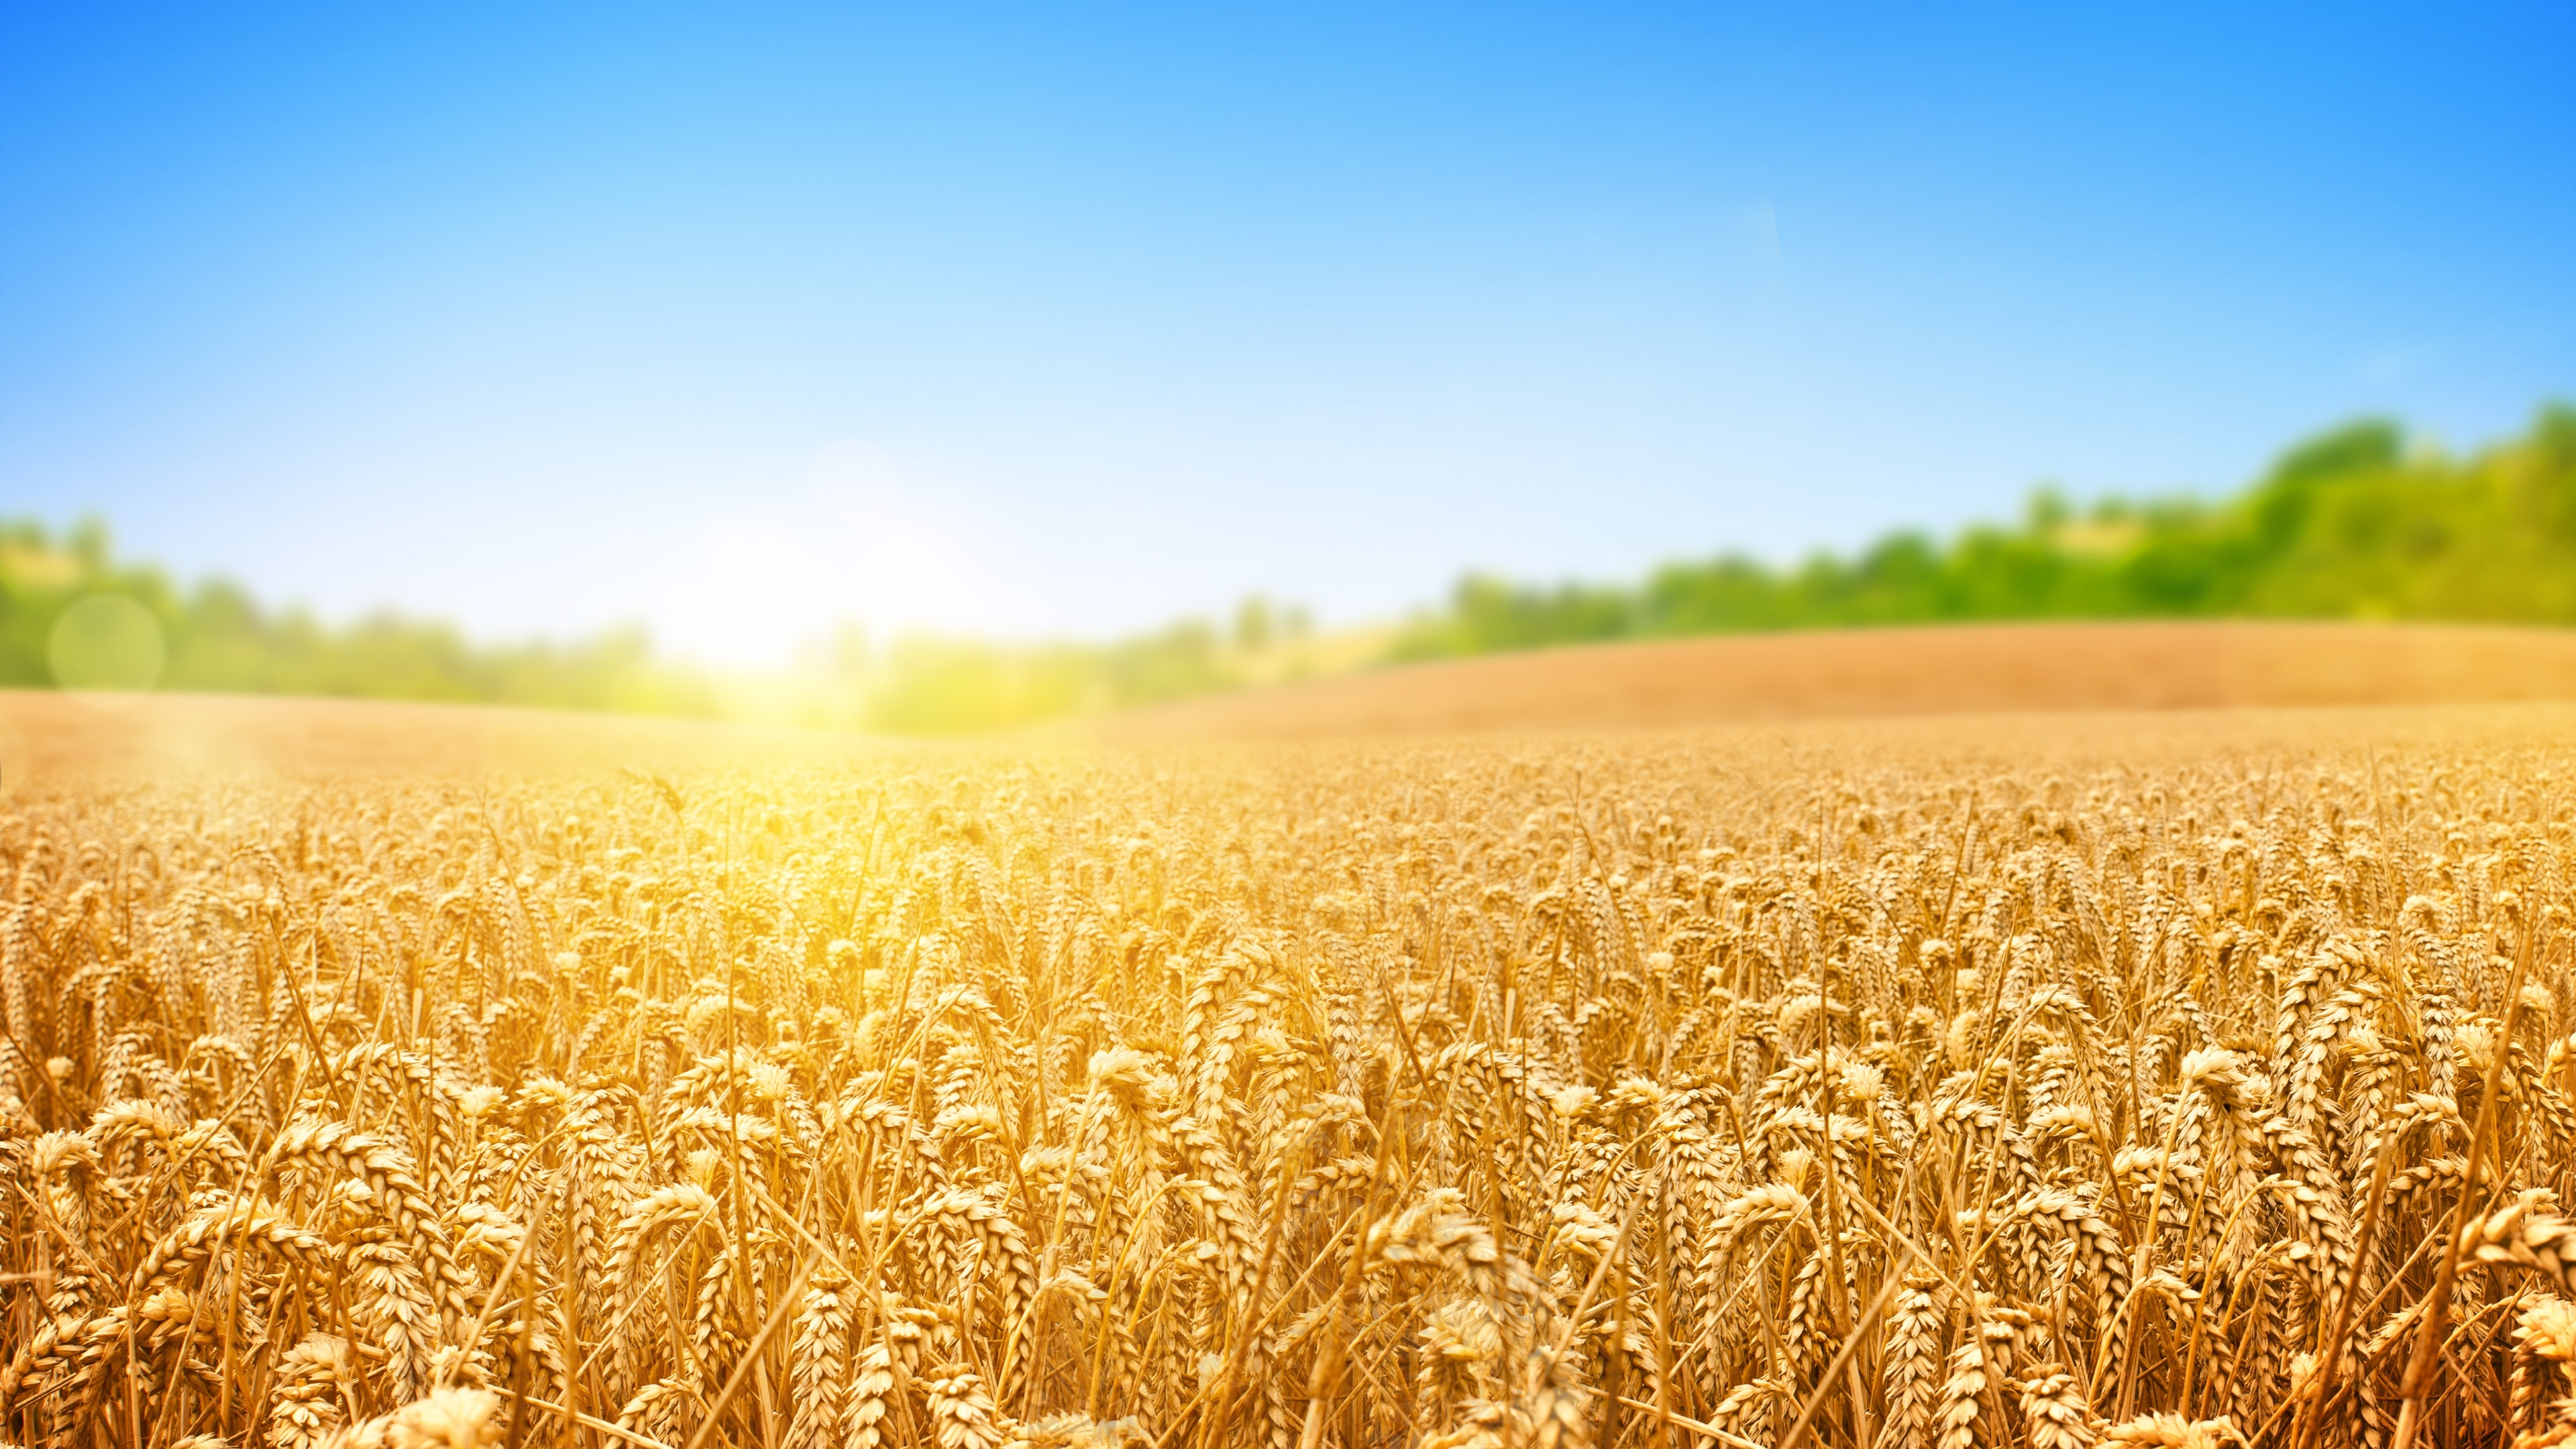 Wallpaper Field 4k Hd Wallpaper Wheat Spikes Sky: Creativity & The Master Of Wheat